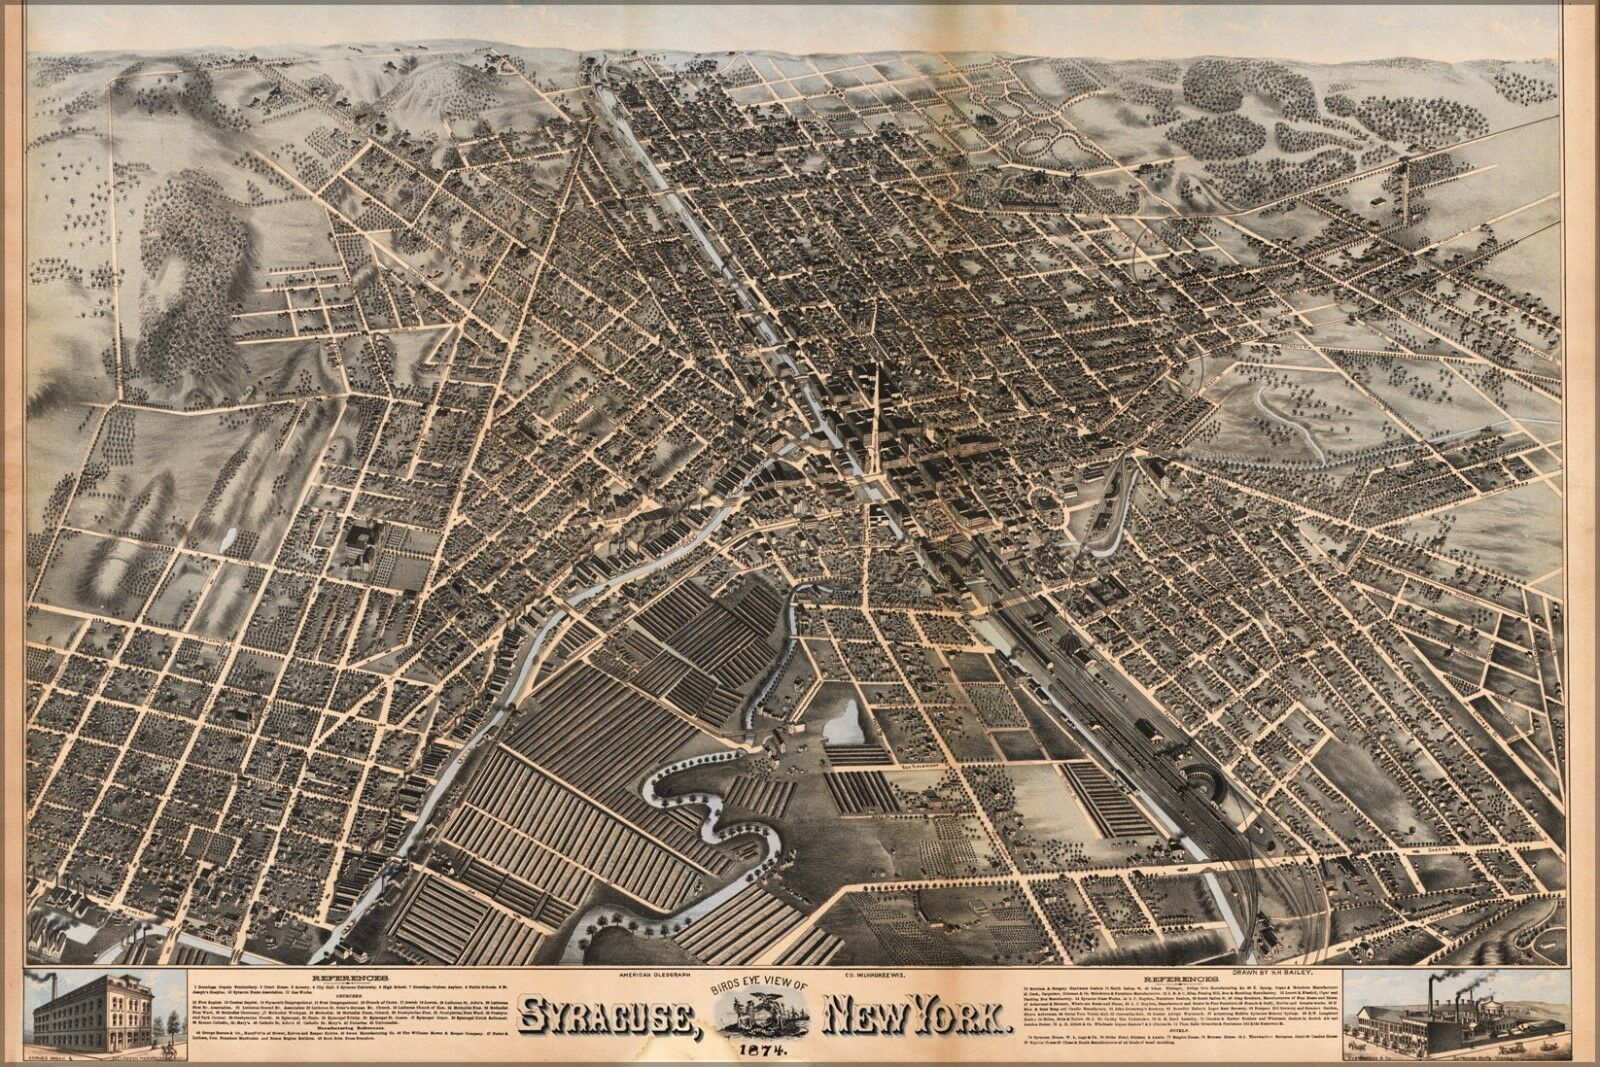 Poster, Many Größes; Birdseye View Of Syracuse, New York  1874